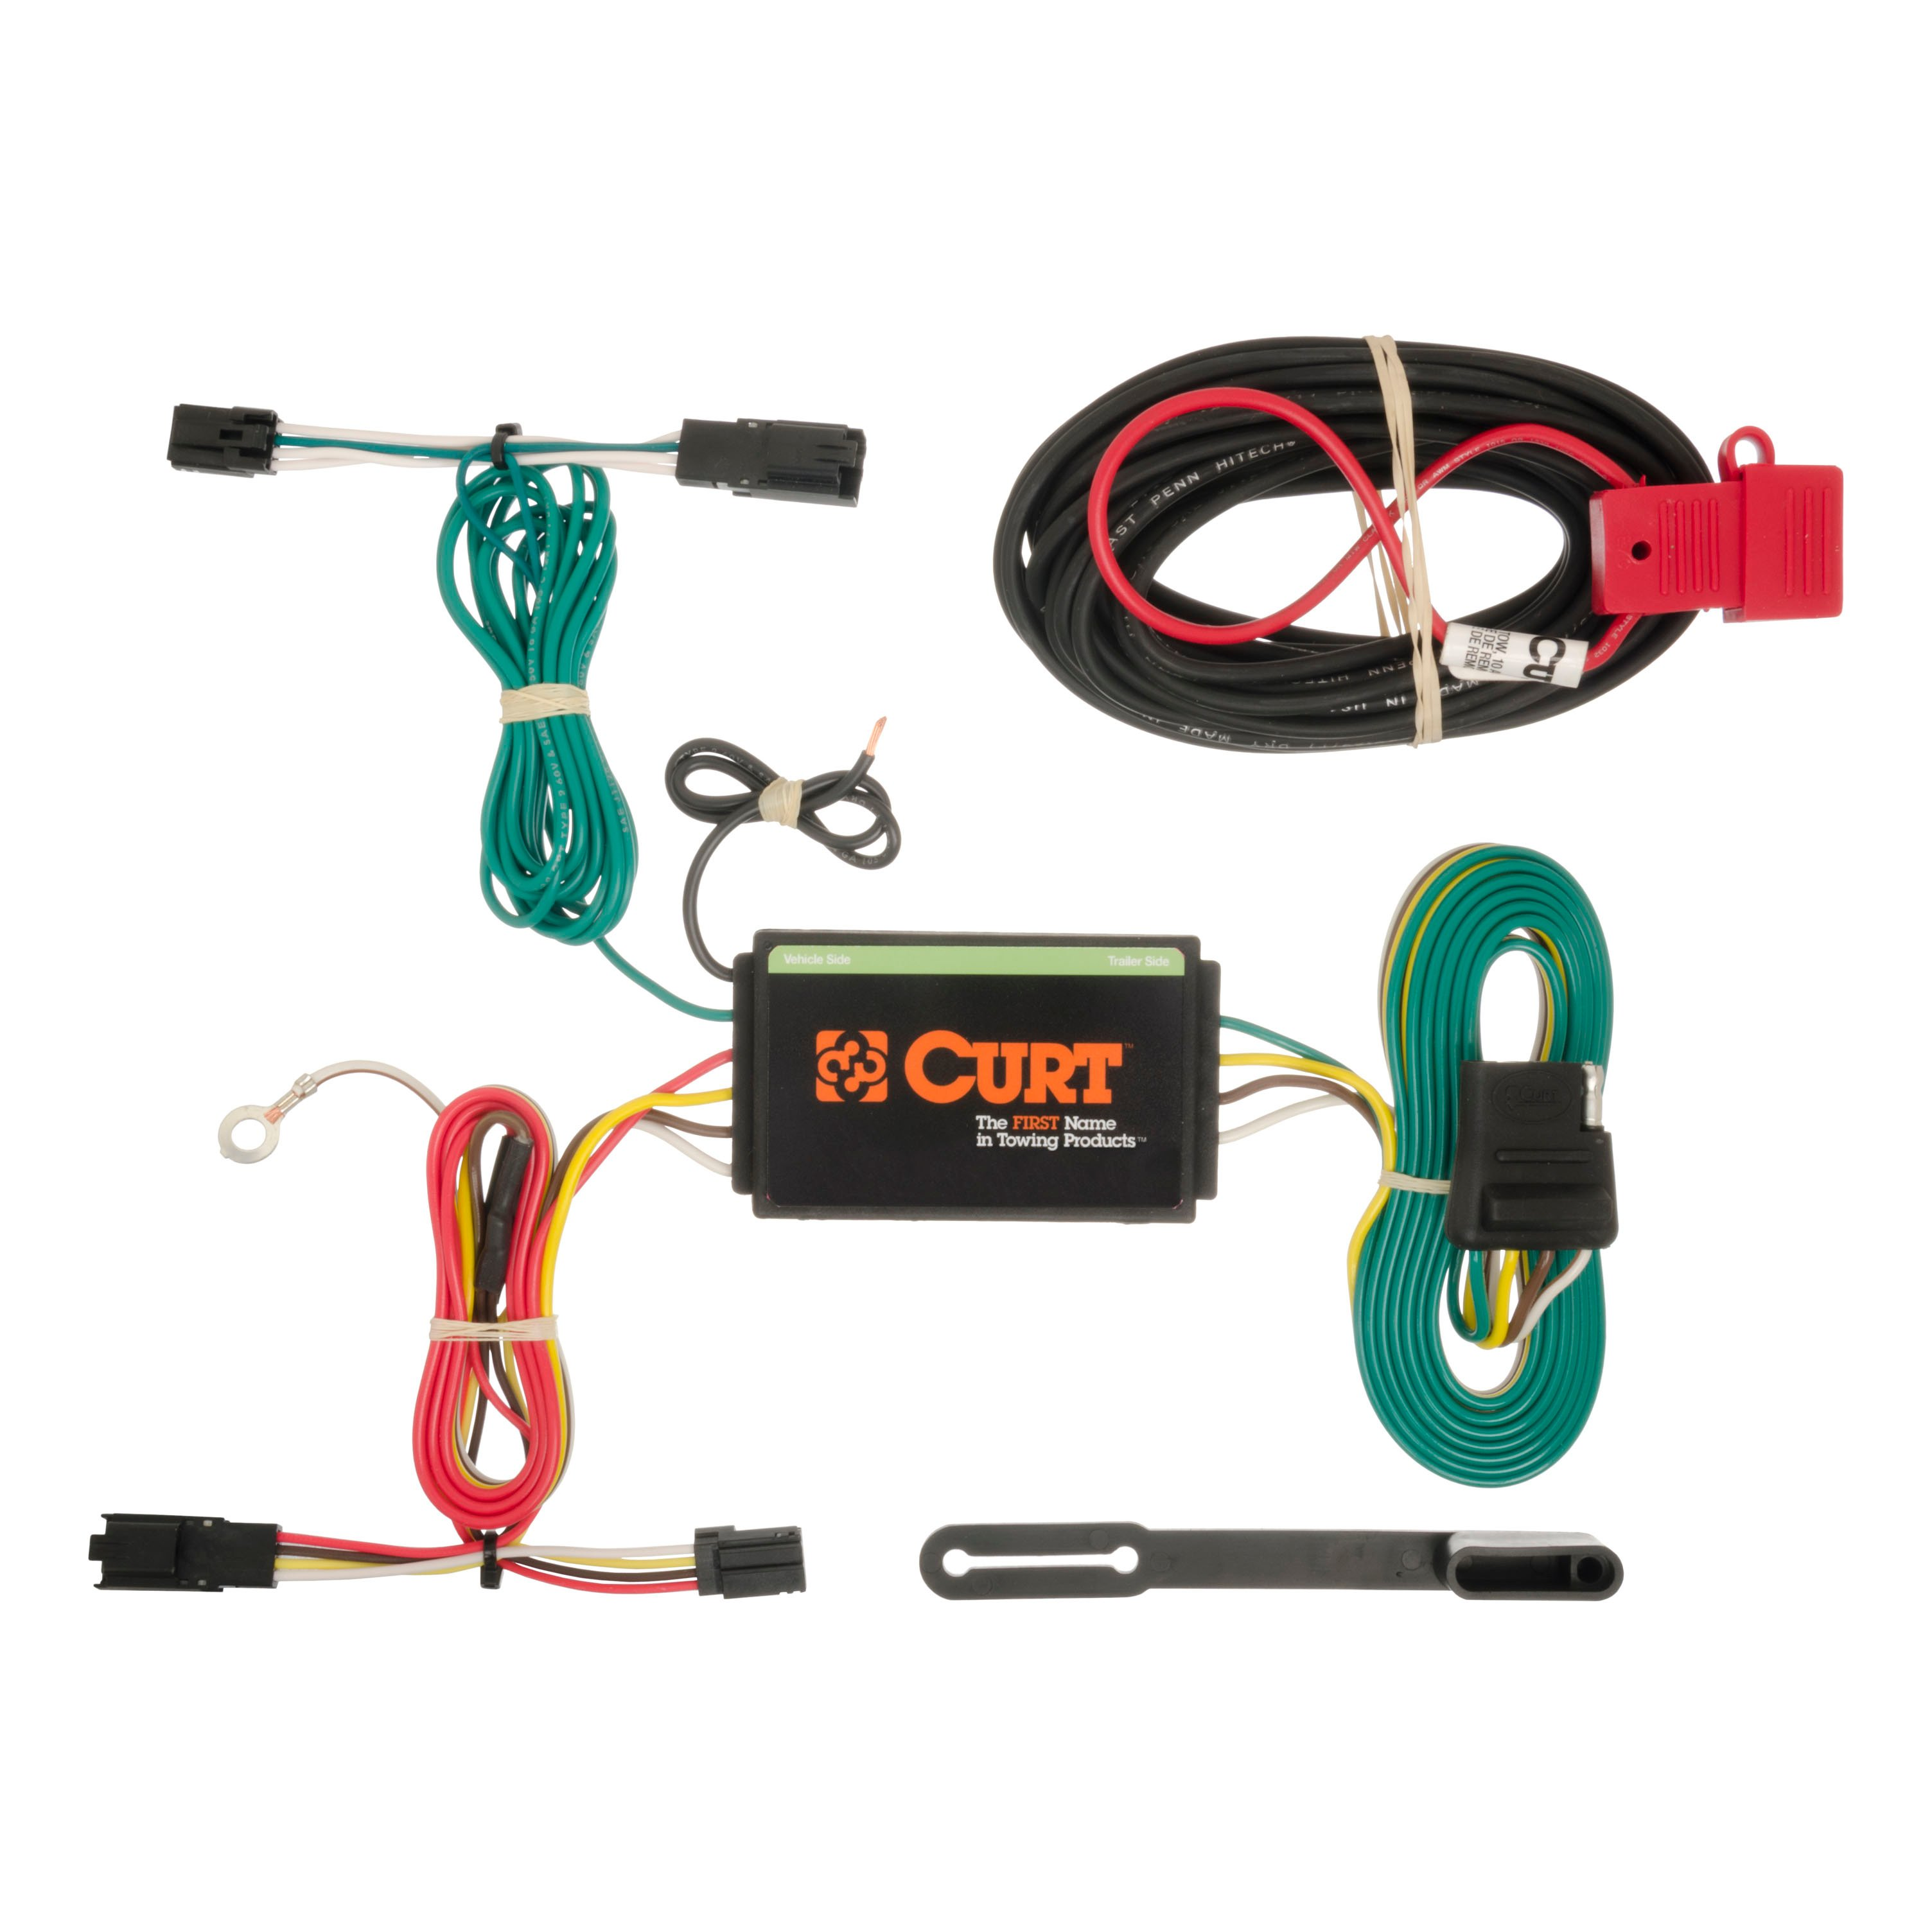 details about curt custom vehicle to trailer wiring harness 56176 for 13 15 chevrolet malibu 2013 curt wiring harness trailer honda crv curt trailer wiring harness #8